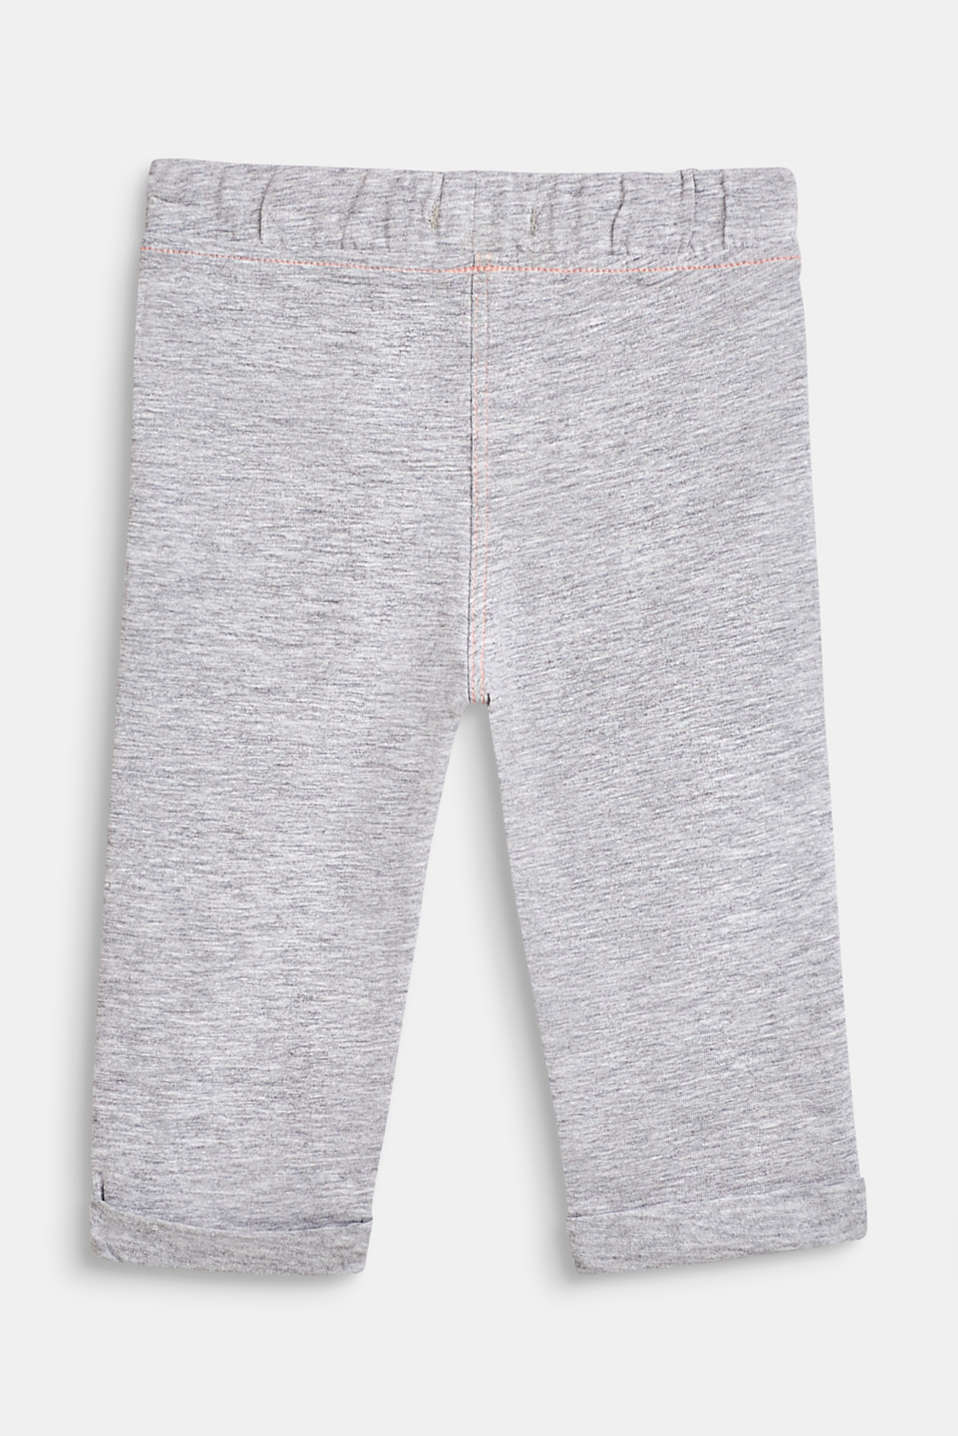 Melange blended cotton leggings, LCHEATHER SILVER, detail image number 1